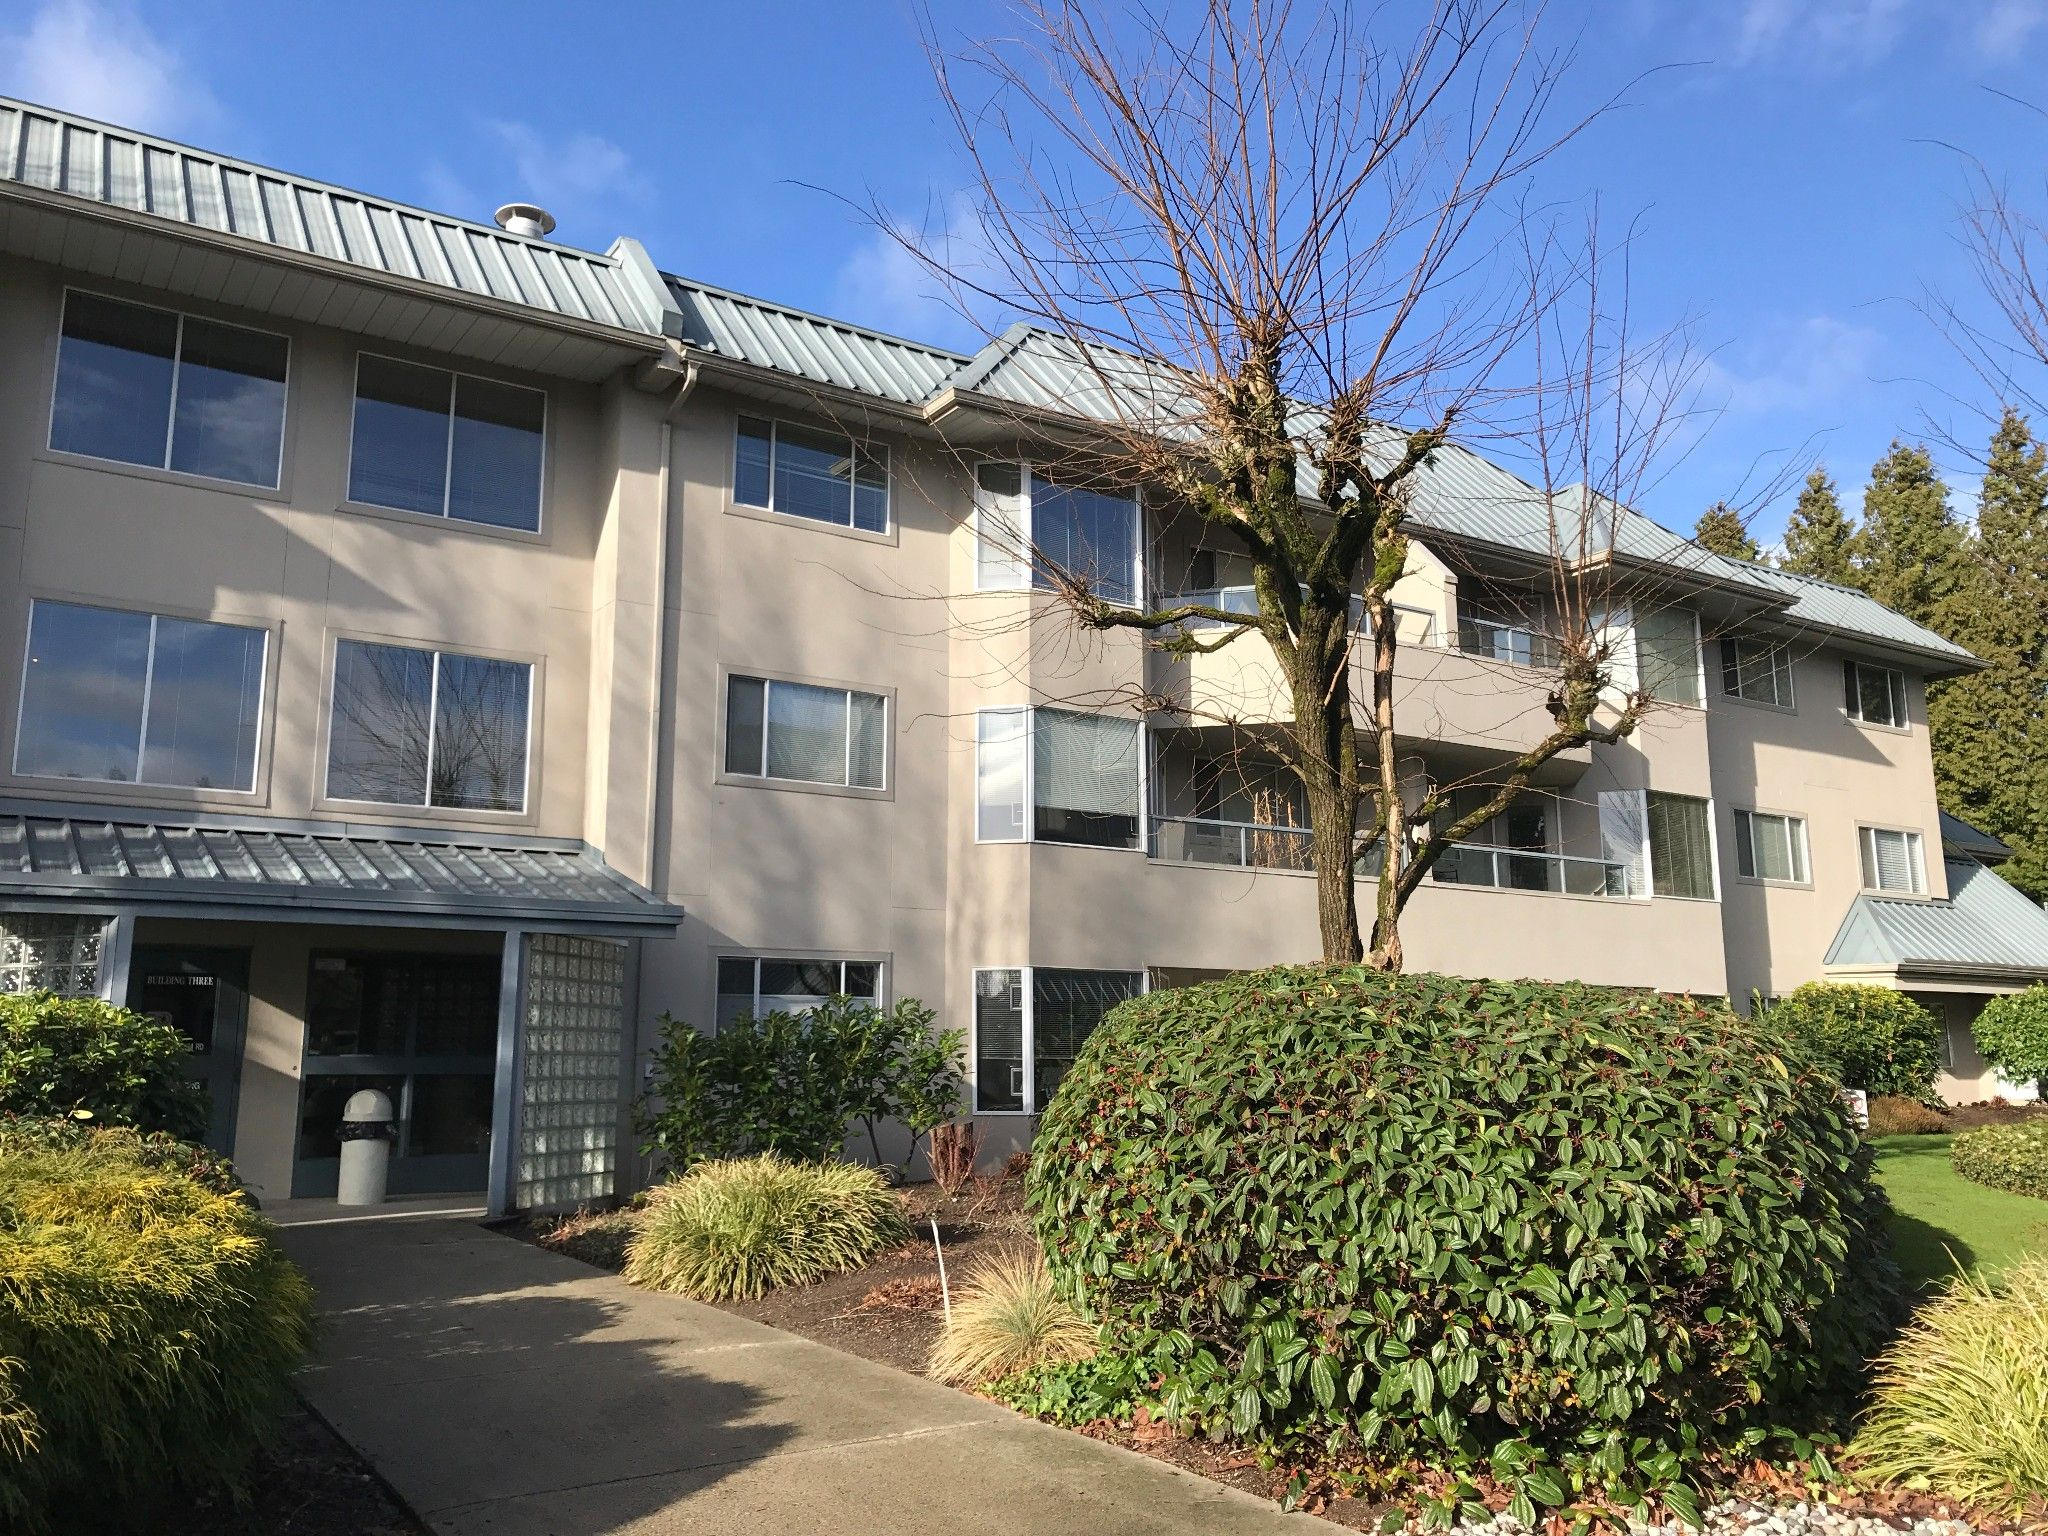 Main Photo: #329 2700 McCallum Rd. in Abbotsford: Central Abbotsford Condo for rent